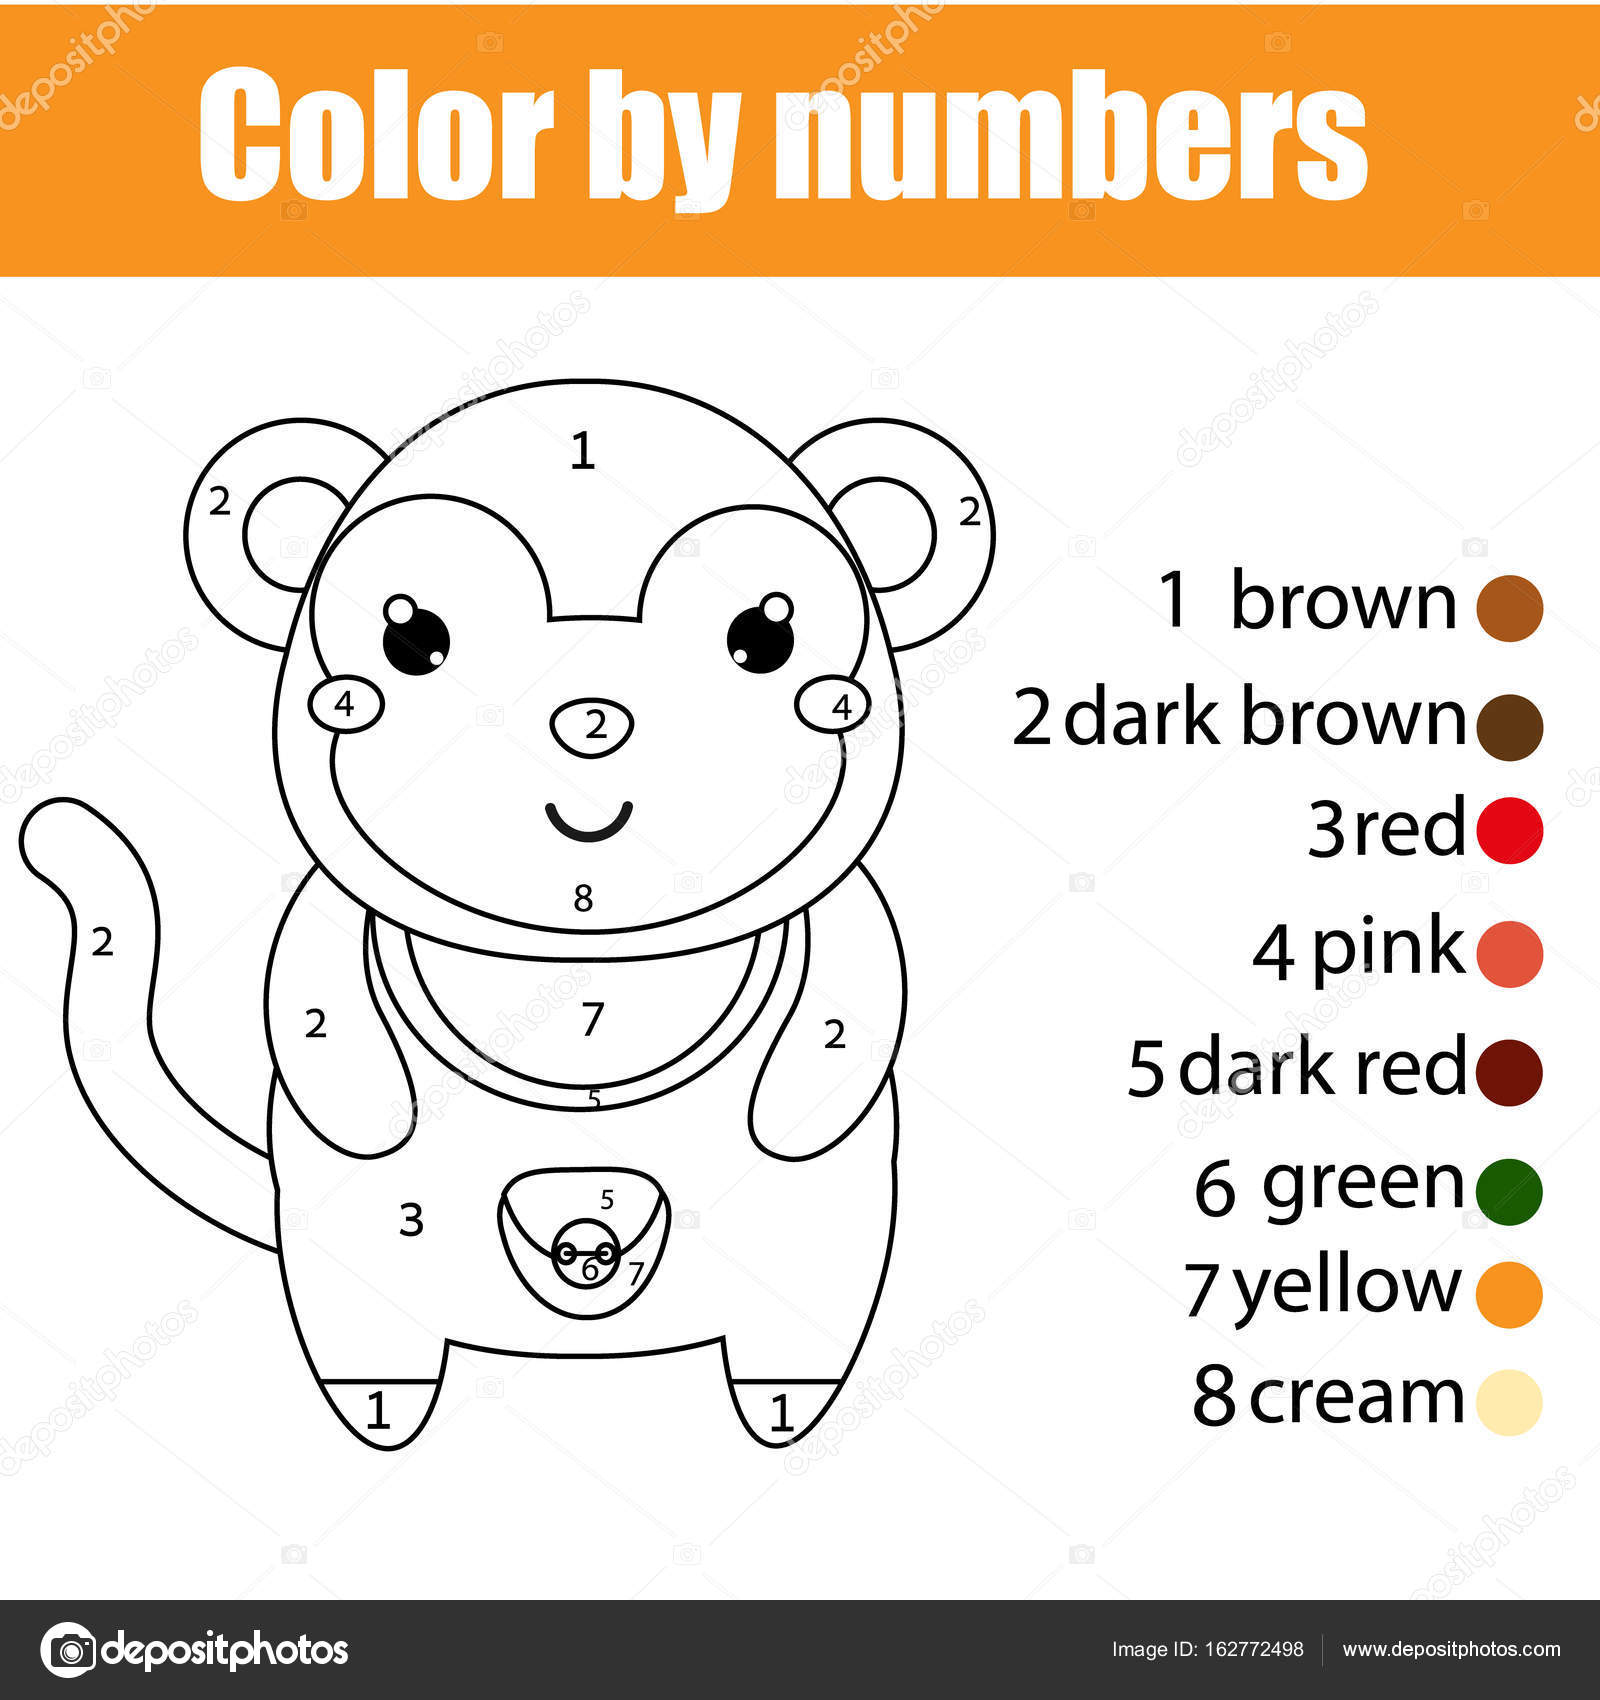 Coloring Page With Monkey Color By Numbers Educational Children